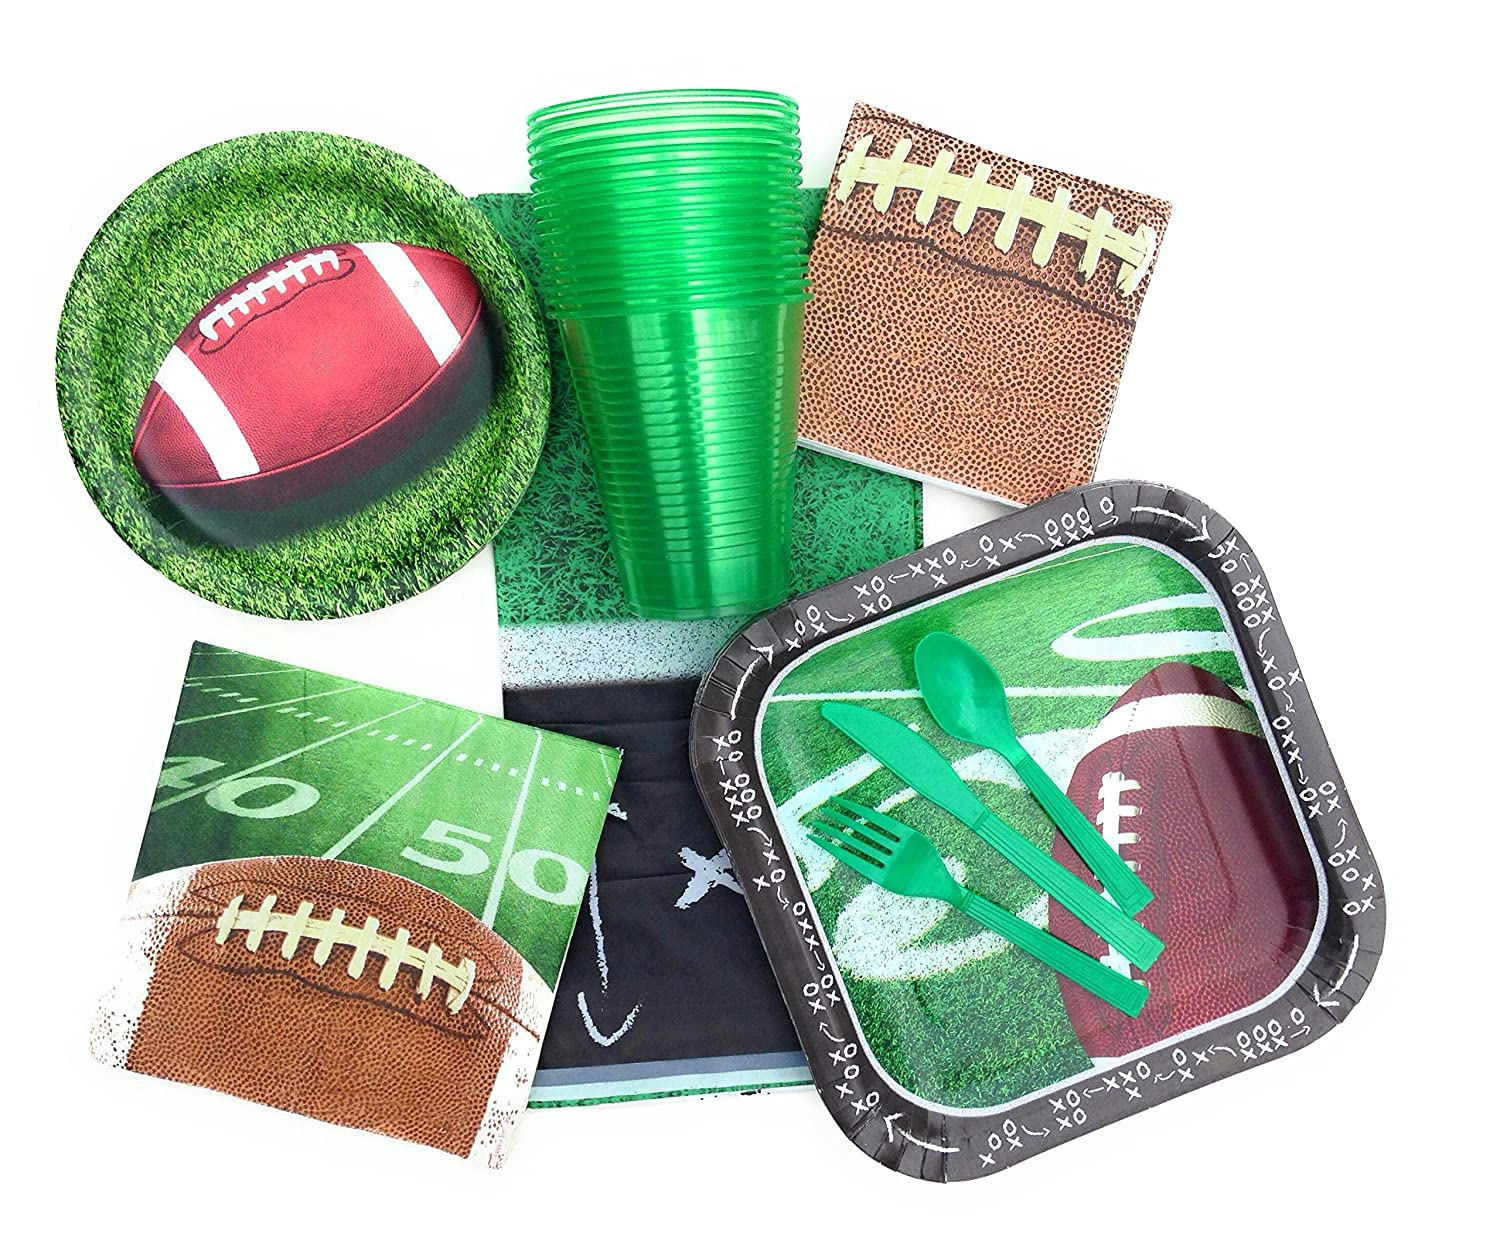 Football Tailgating and Party Supplies - Paper Plates, Napkins